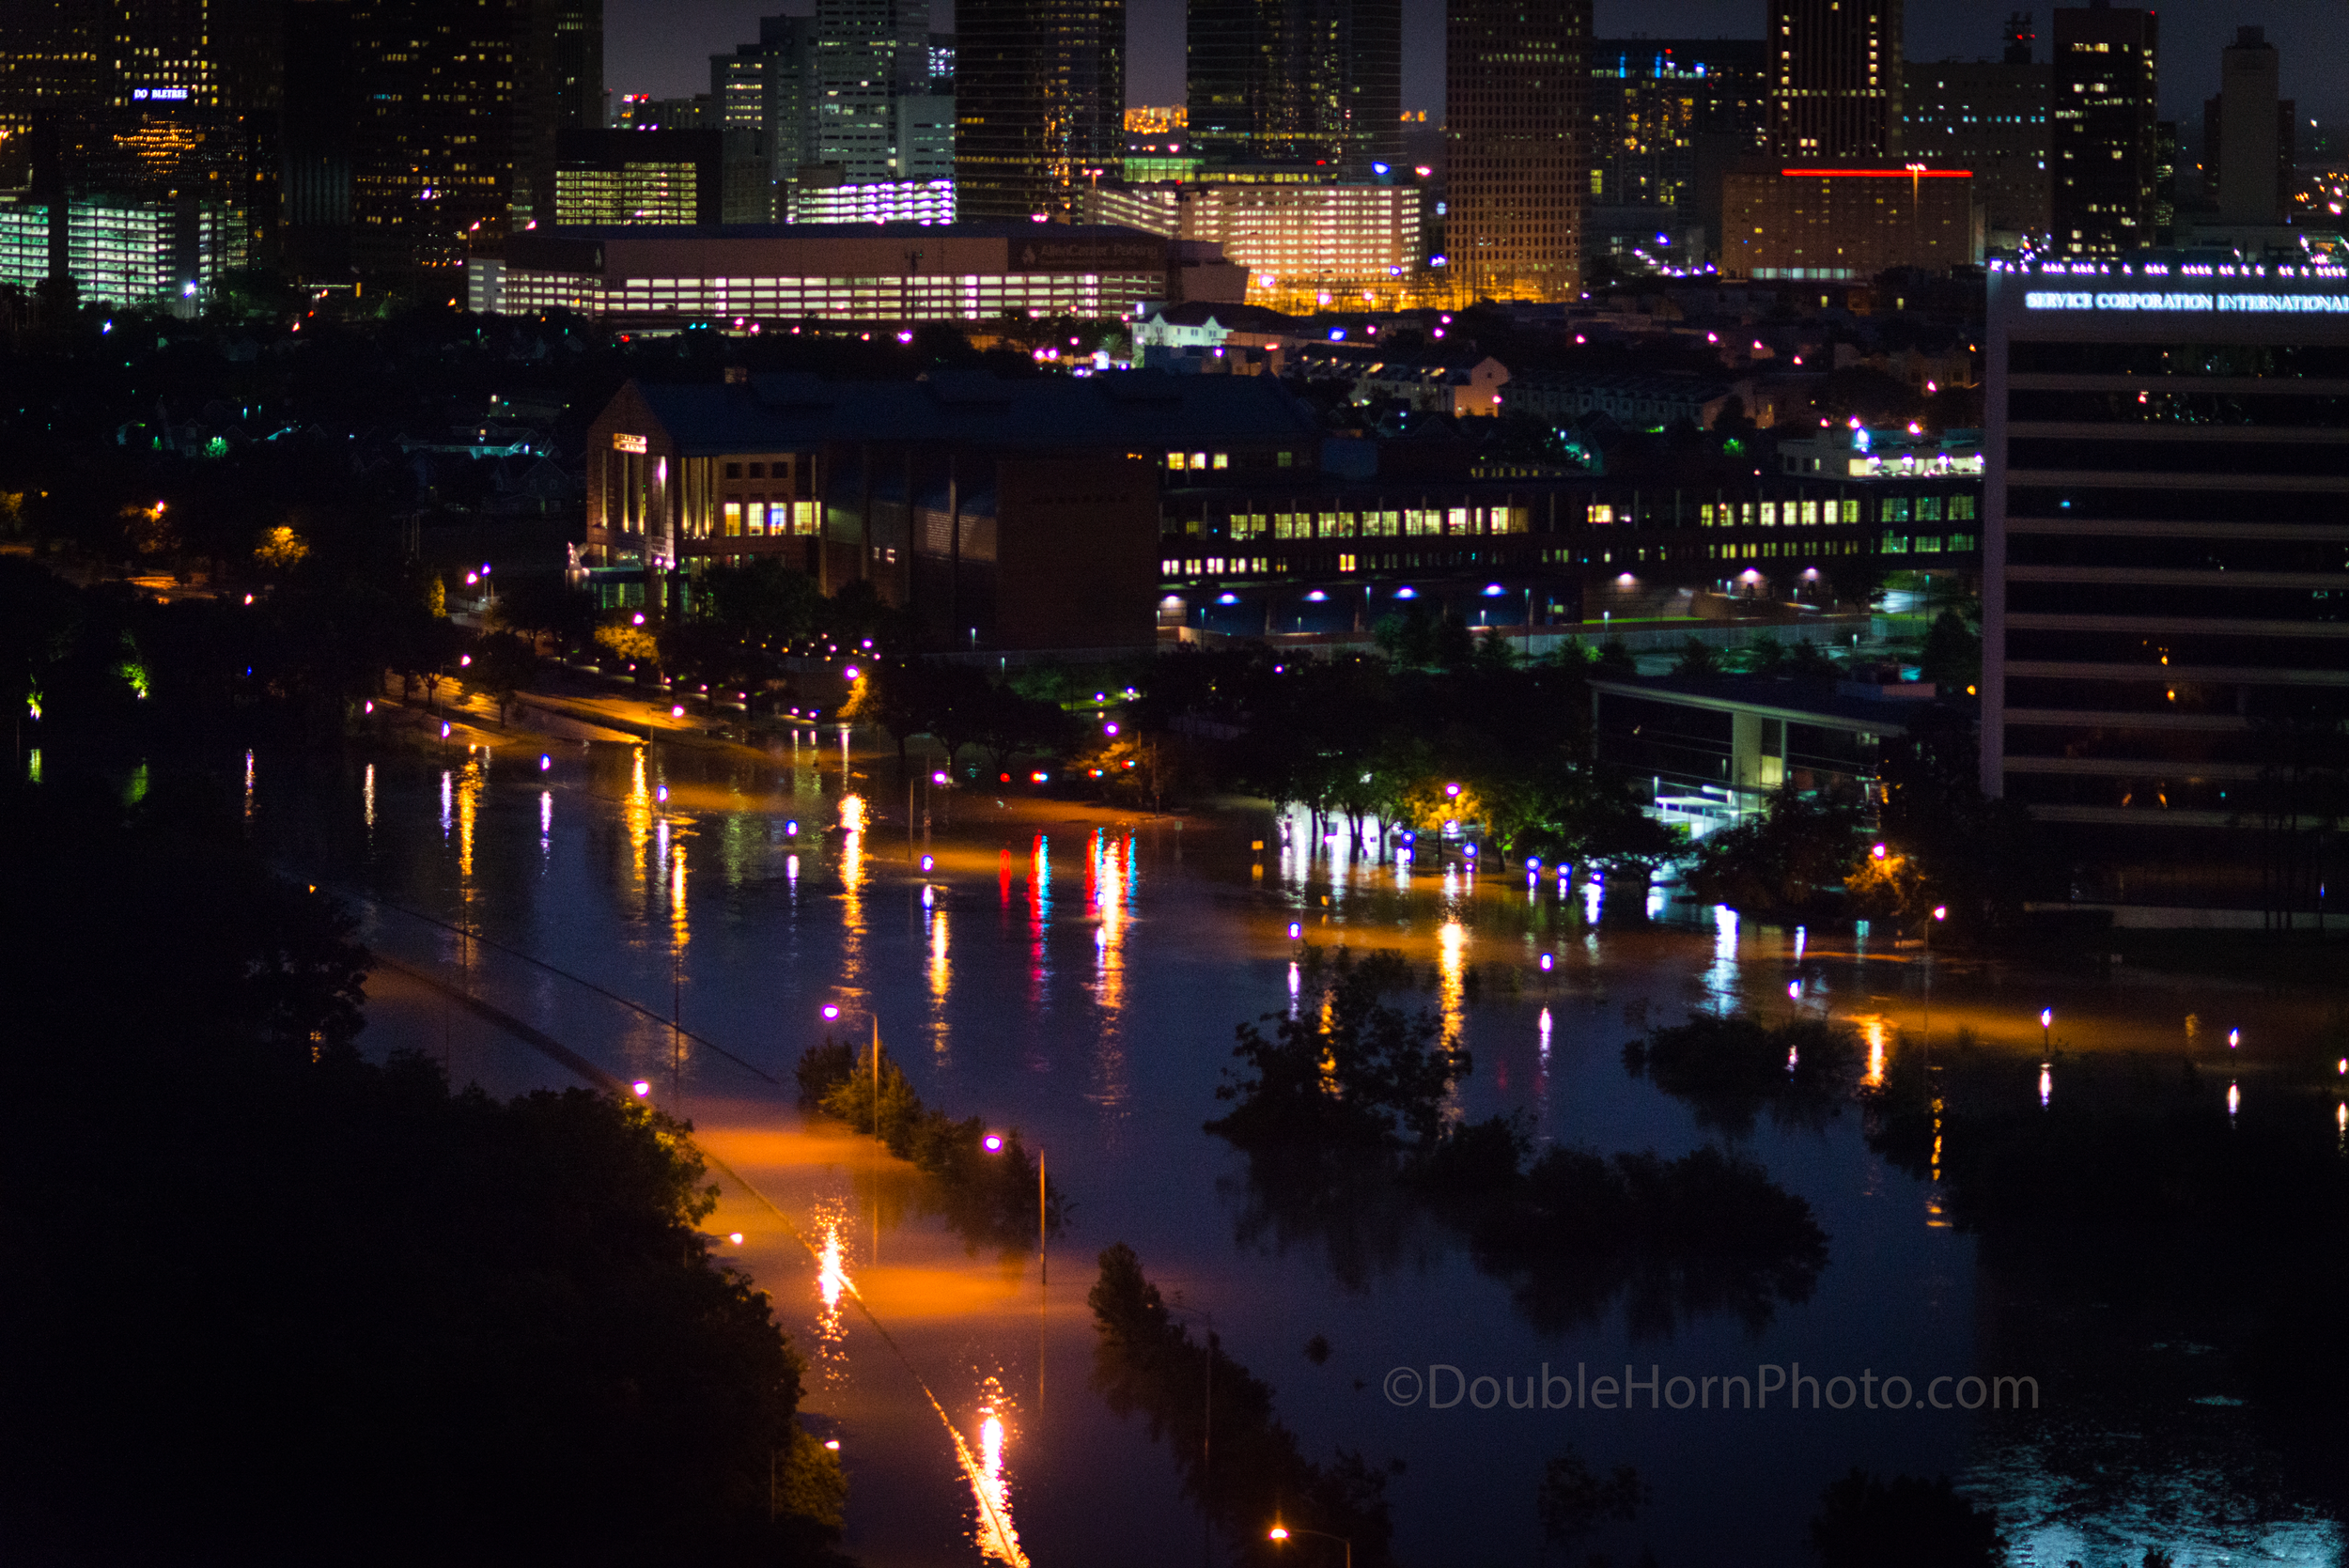 This is what the flood looked like right before dawn of May 26, 2015.